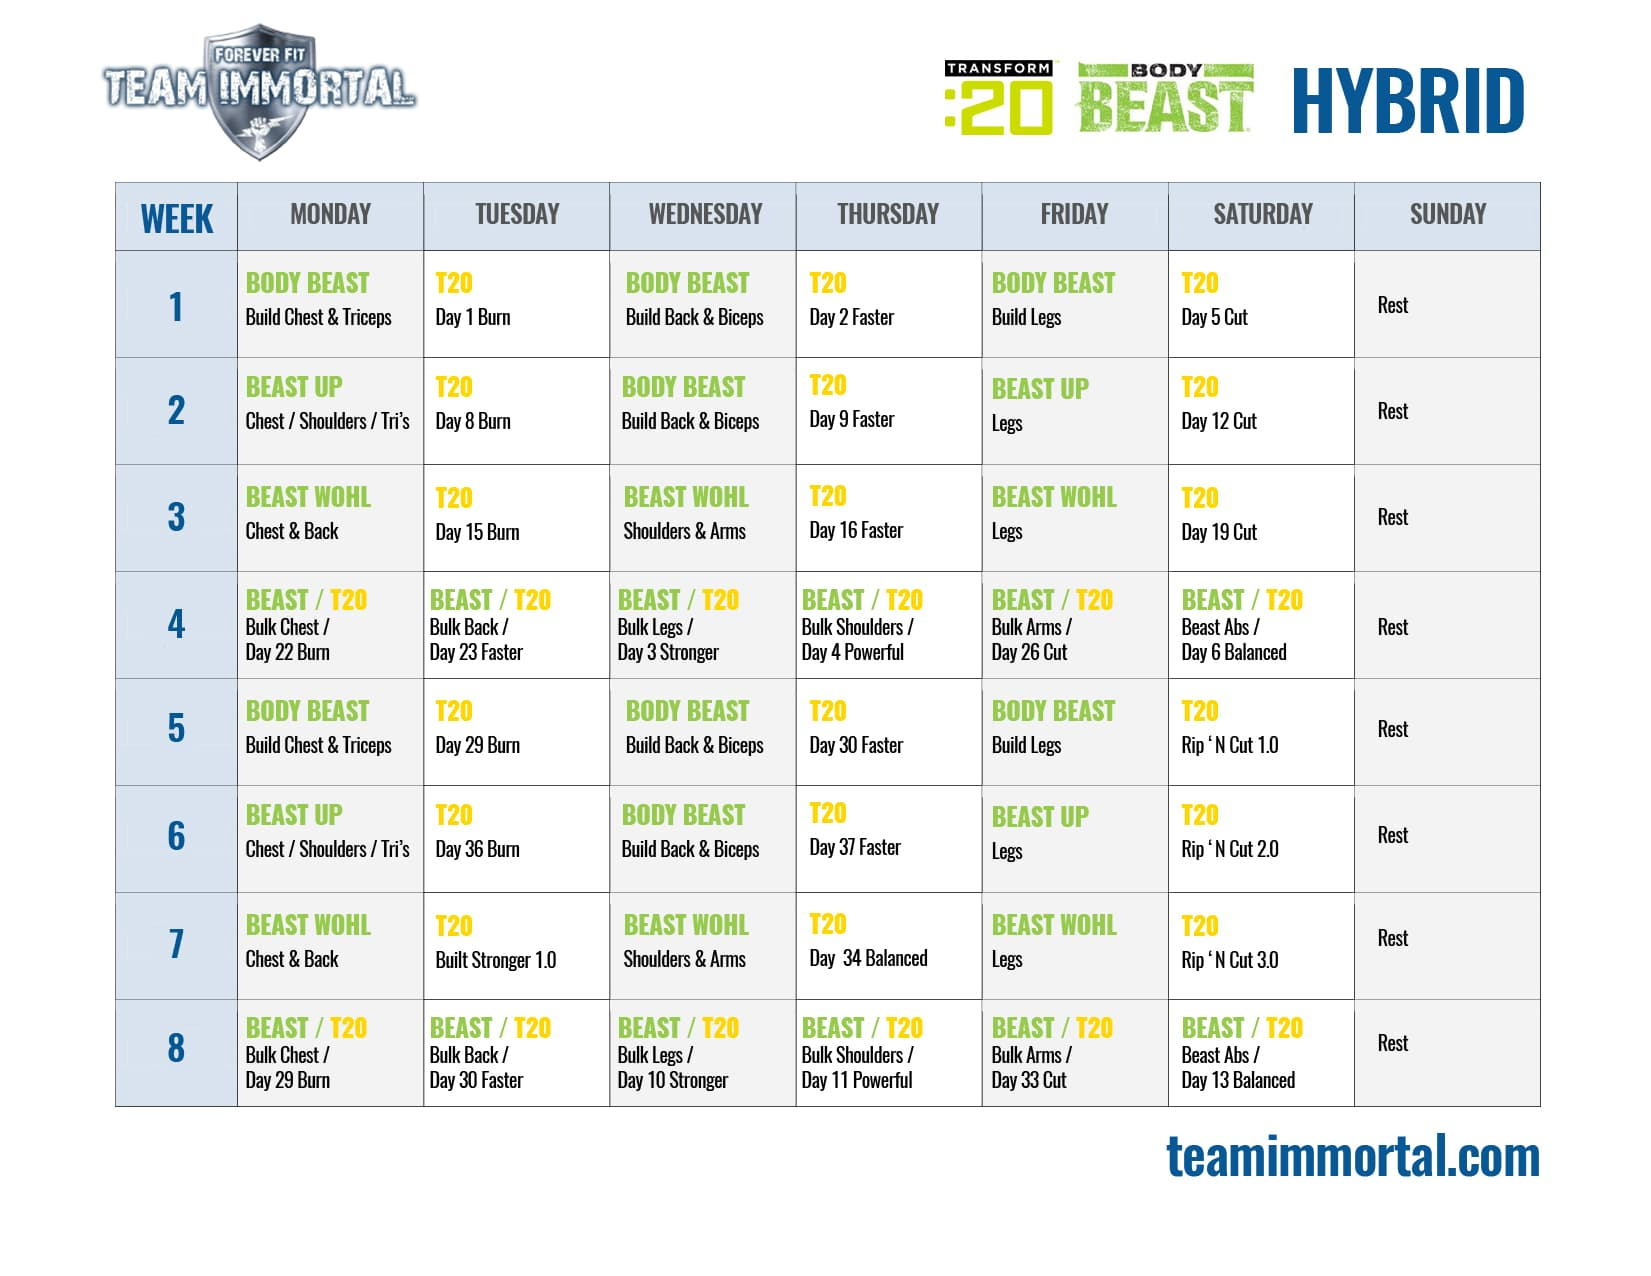 Transform 20 Body Beast Hybrid | Team Immortal | Forever Fit pertaining to Body Beast Hybrid